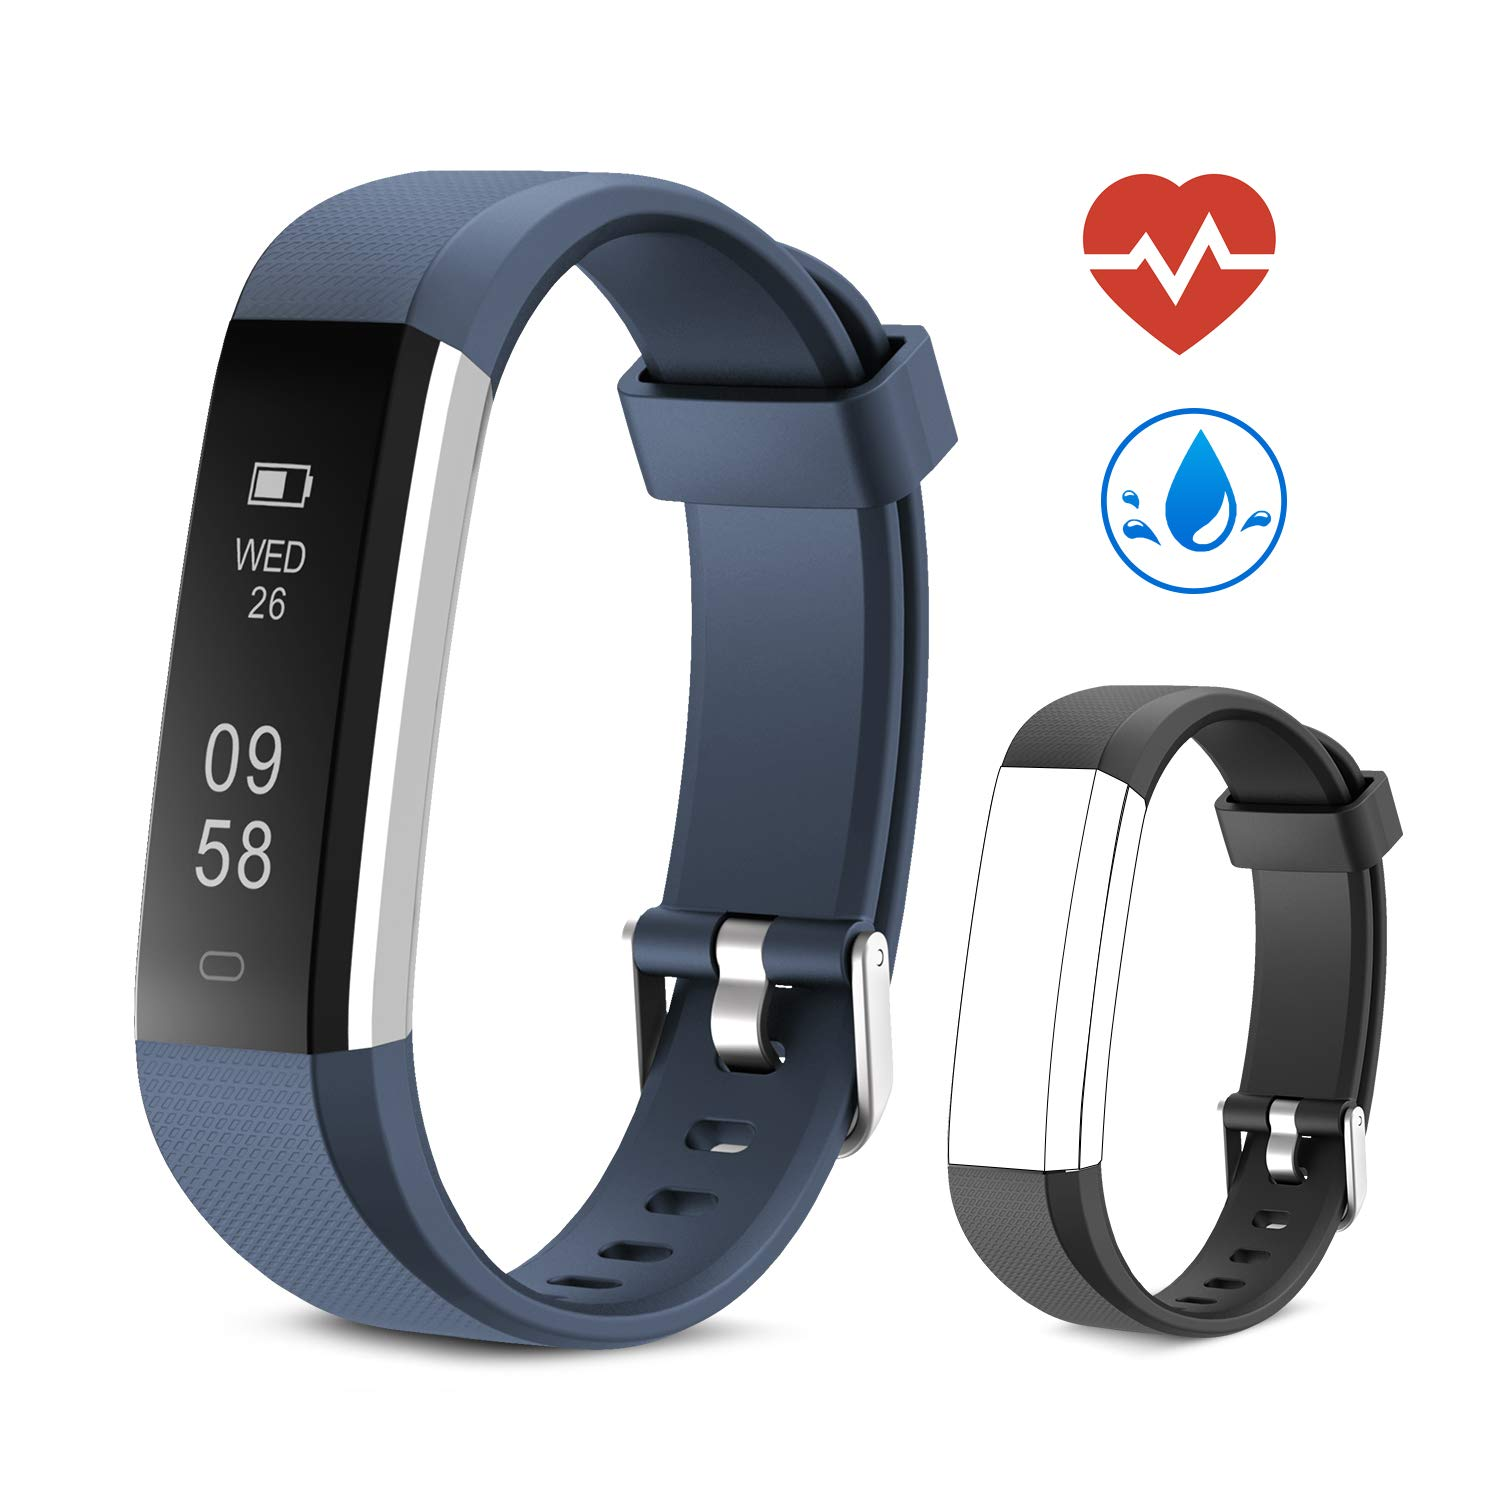 Arbily 2020 best Smartwatch Fitness Band under 2000 in India